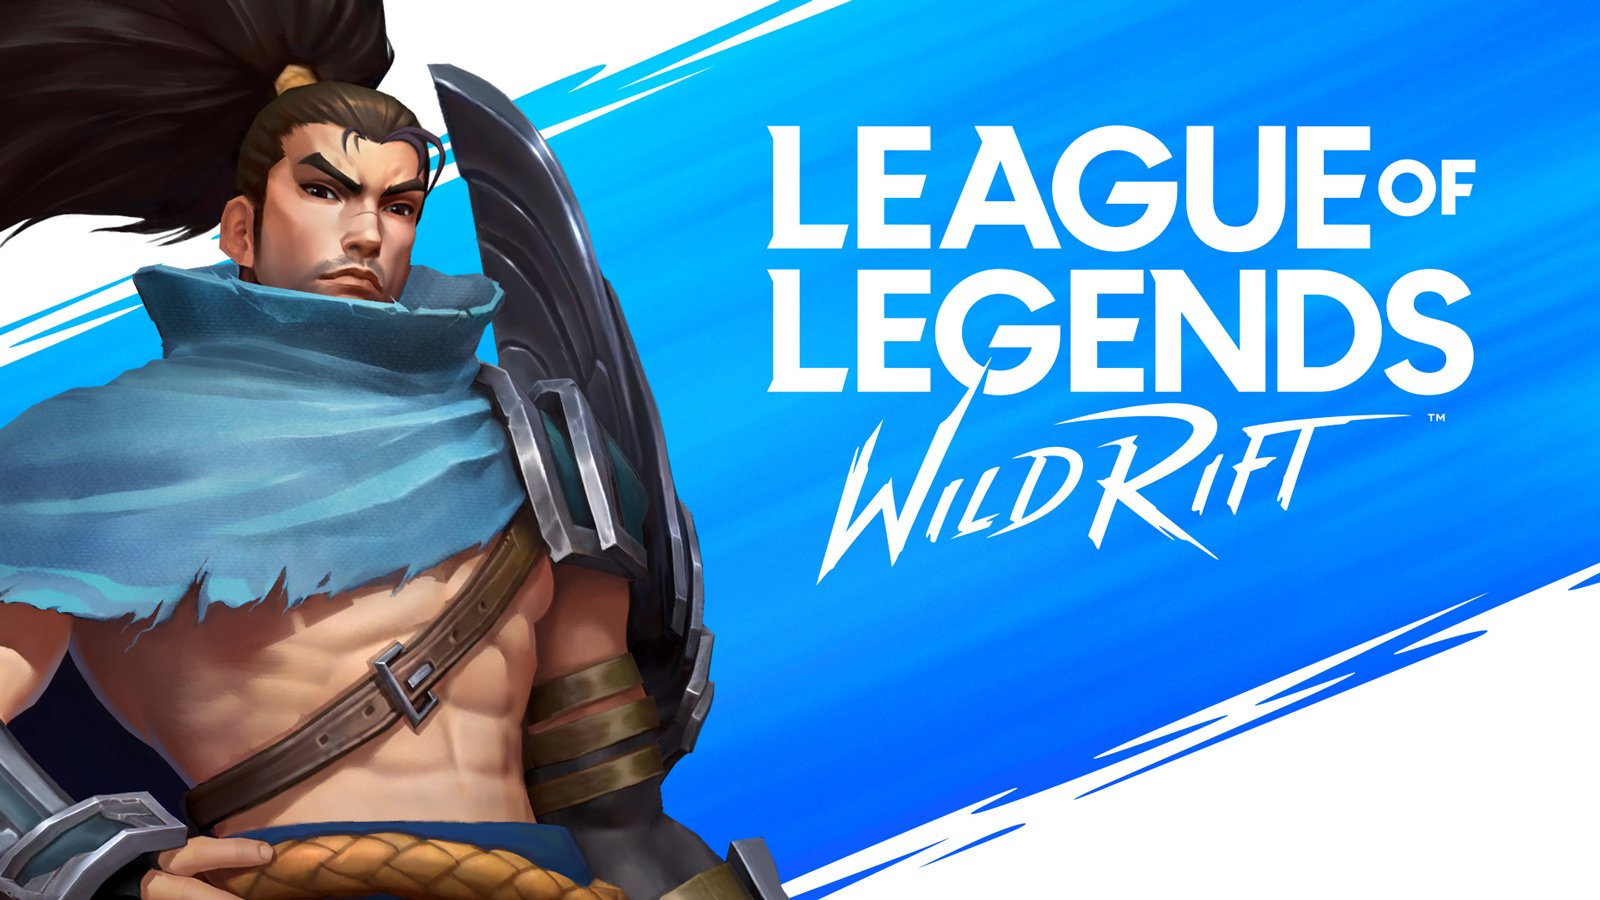 Riot Games Made Available Six Champions To Test In Wild Rift: Kai'Sa, Evelynn, Akali, Darius, Draven, and Seraphine